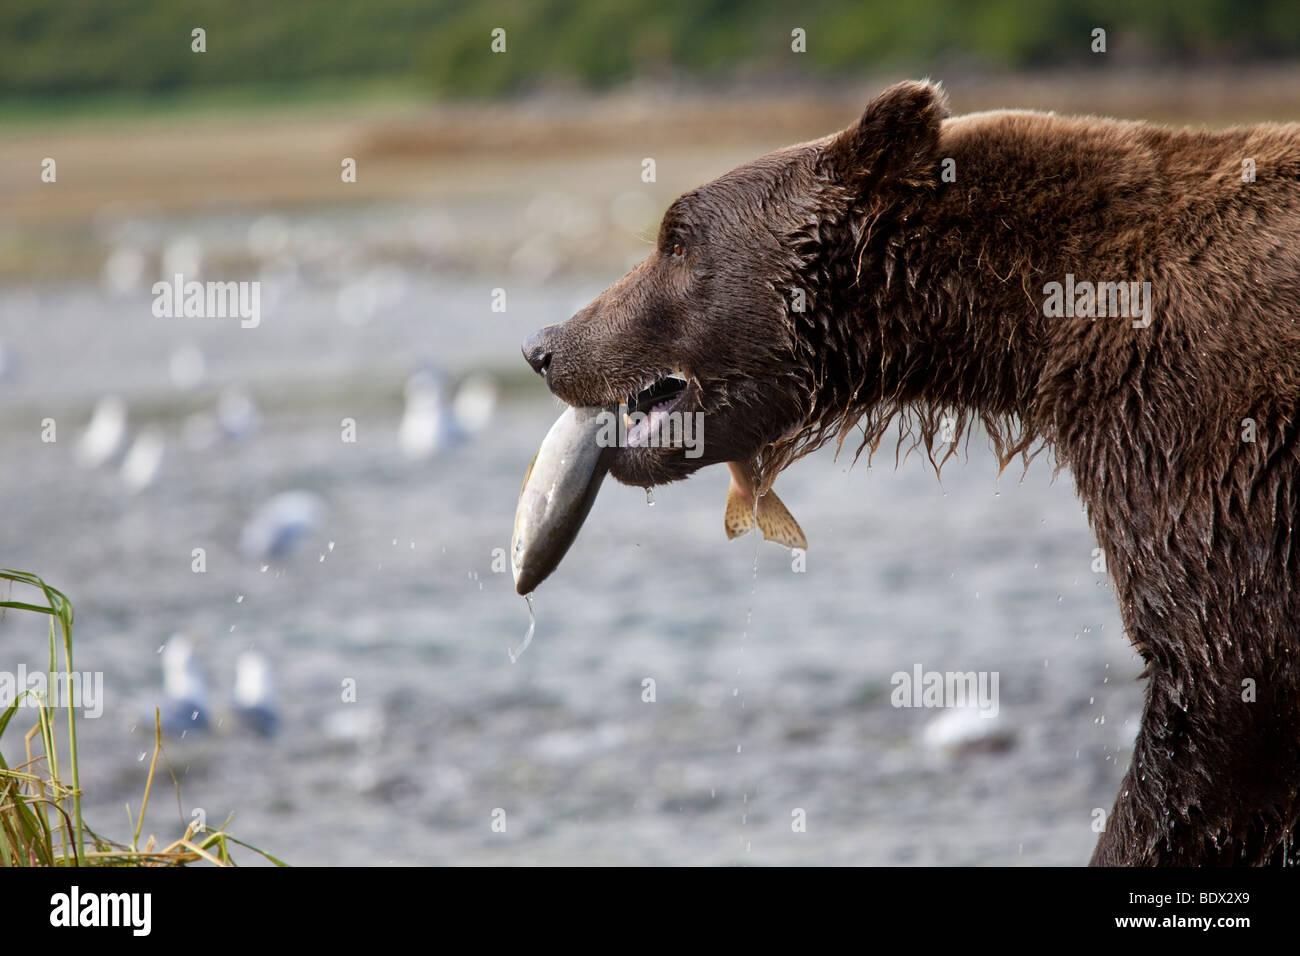 Grizzly bear catching salmon victory walk in Geographic Bay Katmai National Park Alaska - Stock Image